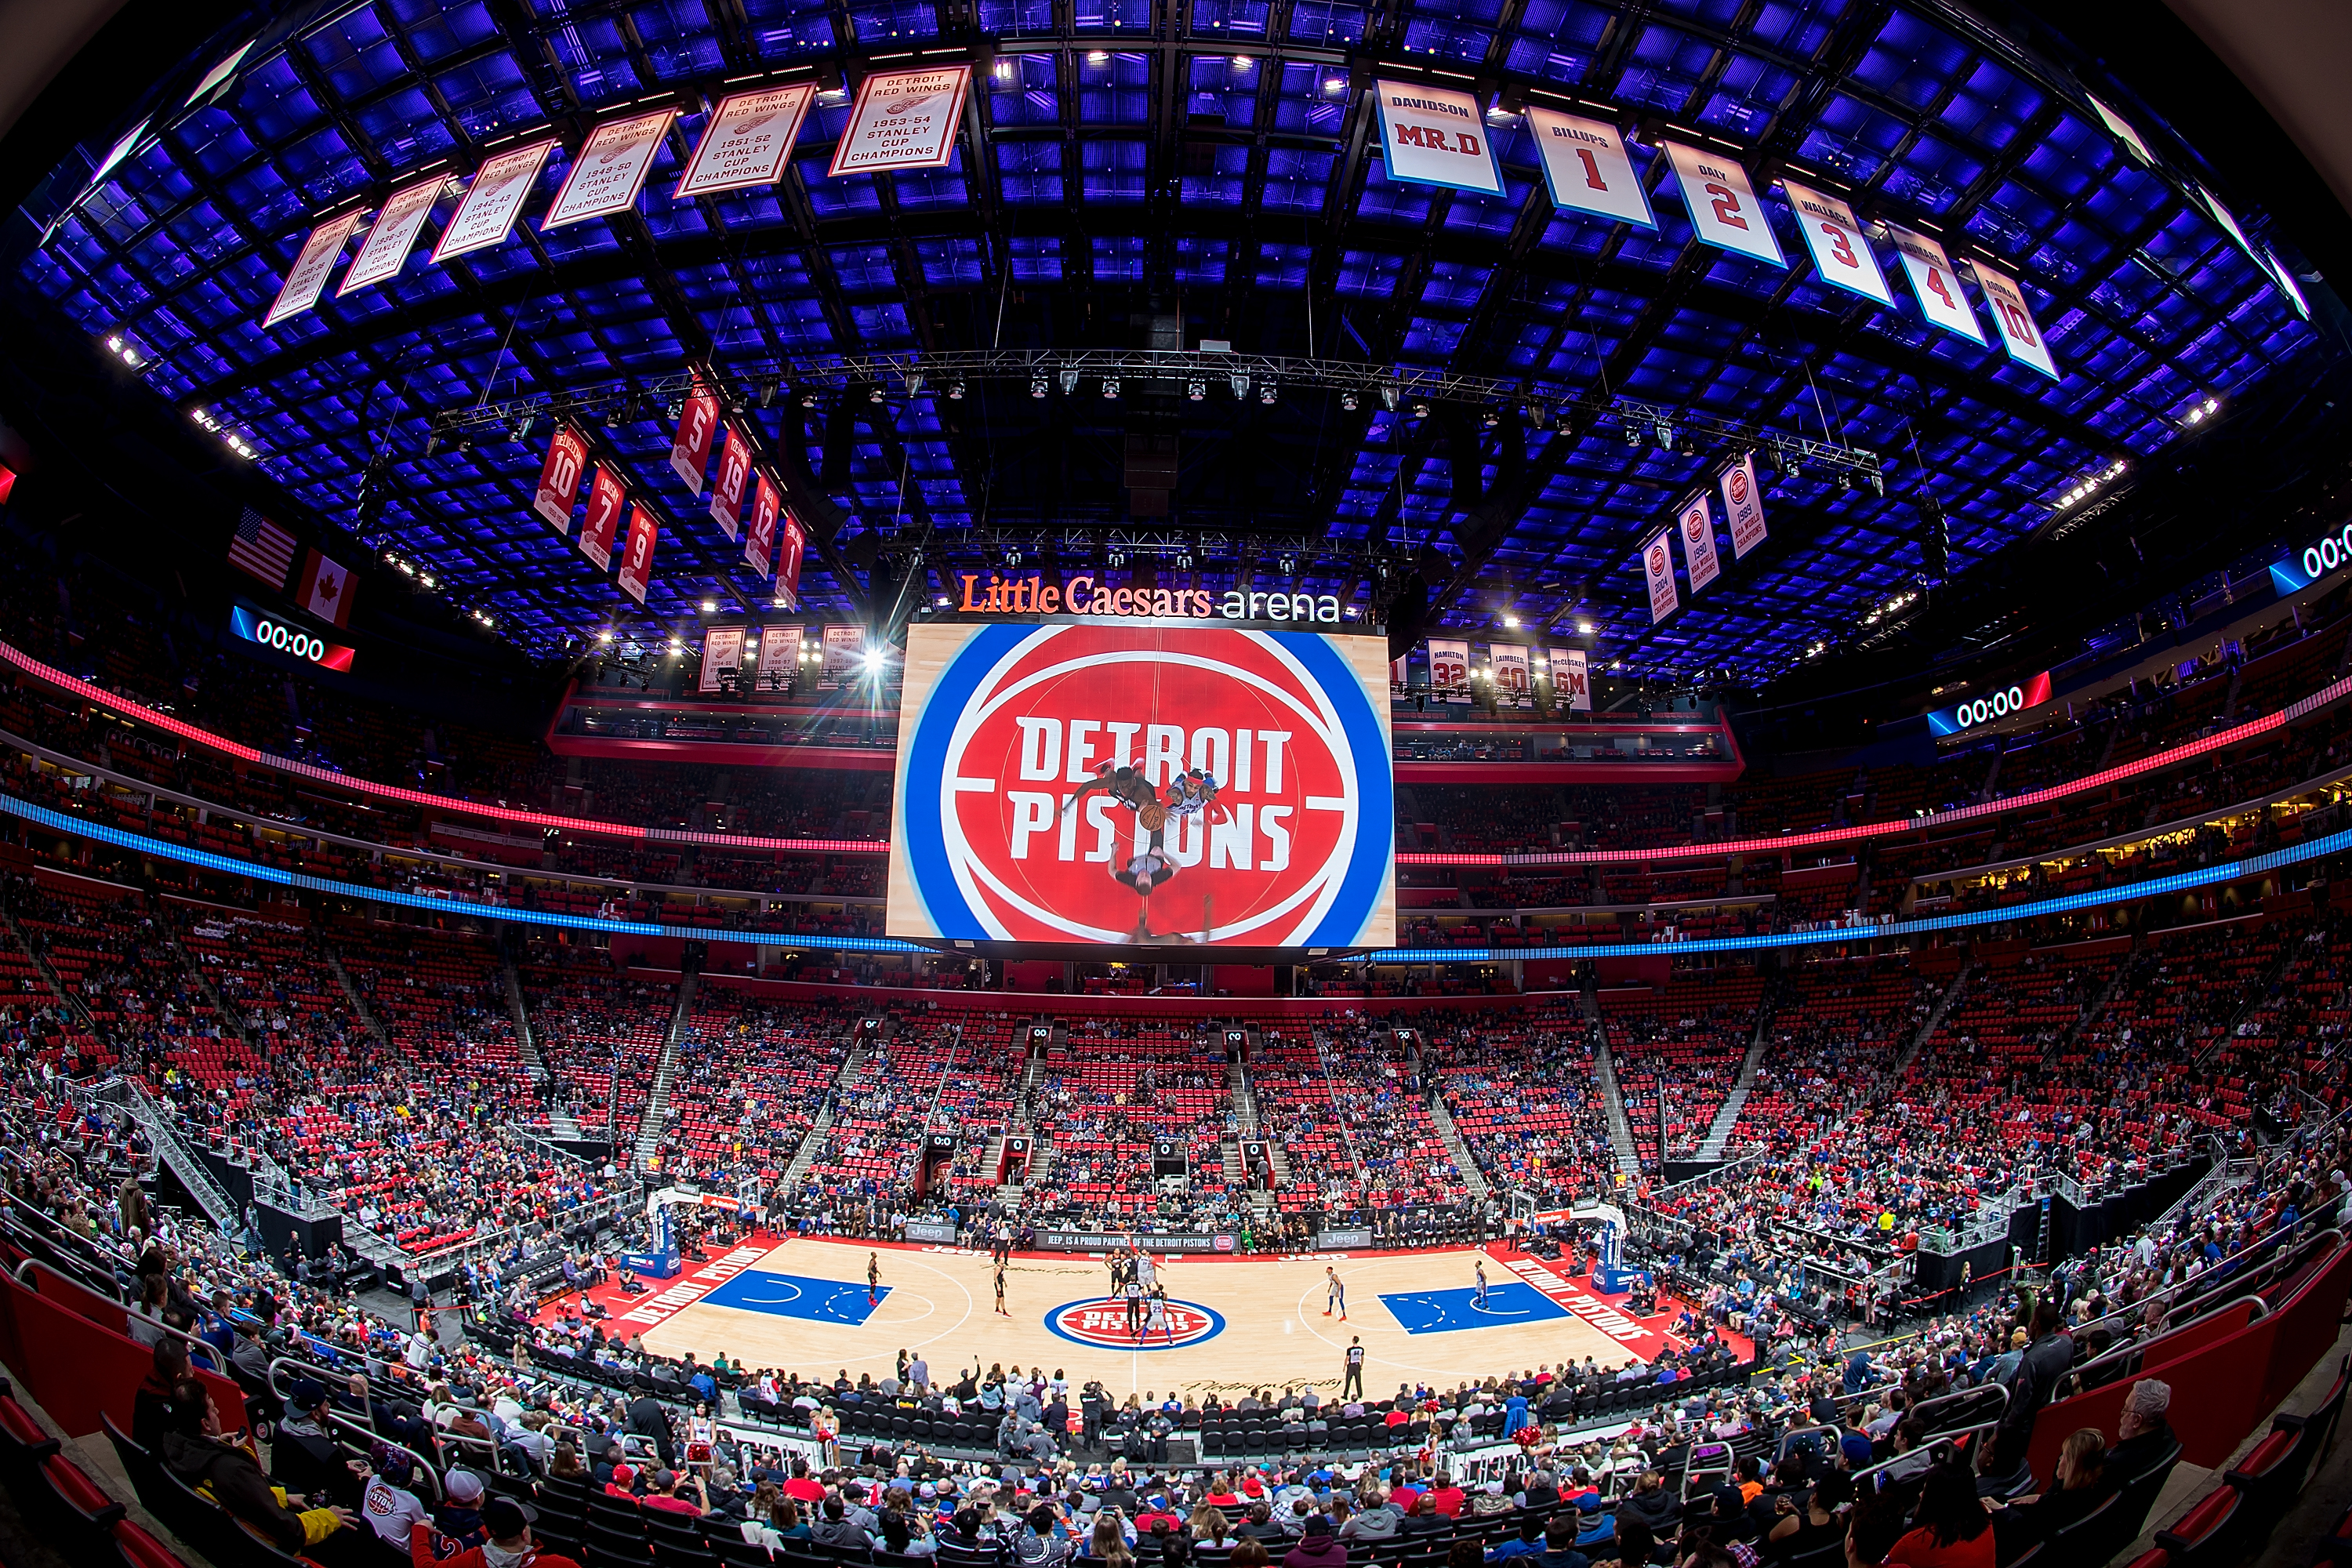 DETROIT, MI - JANUARY 06: A general view of the start of the NBA game between the Detroit Pistons and the Houston Rockets at Little Caesars Arena on January 6, 2018 in Detroit, Michigan. NOTE TO USER: User expressly acknowledges and agrees that, by downloading and or using this photograph, User is consenting to the terms and conditions of the Getty Images License Agreement. (Photo by Dave Reginek/Getty Images)